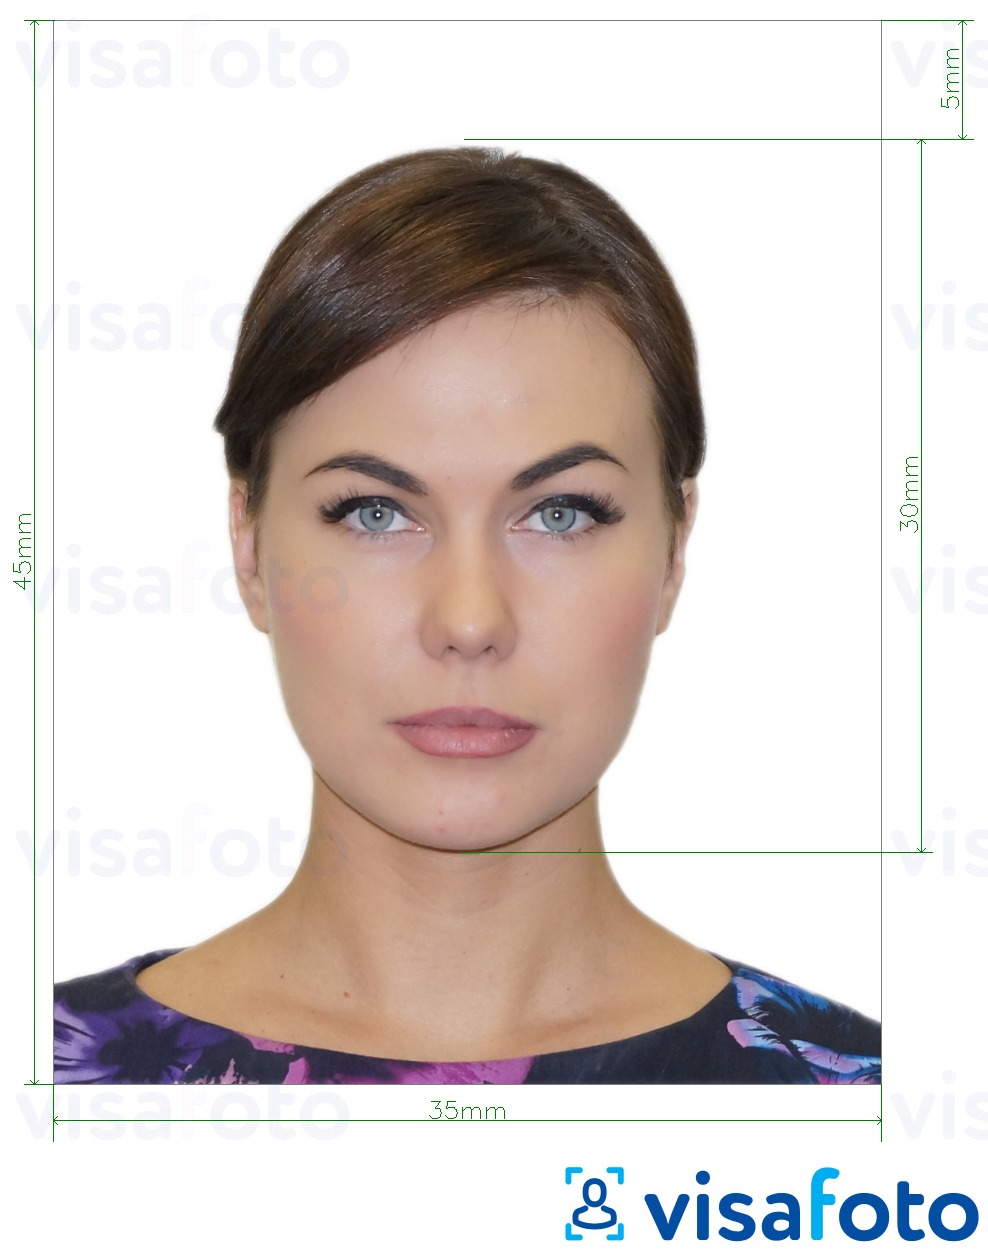 Example of photo for Russia visa via VFSGlobal 35x45 mm with exact size specification